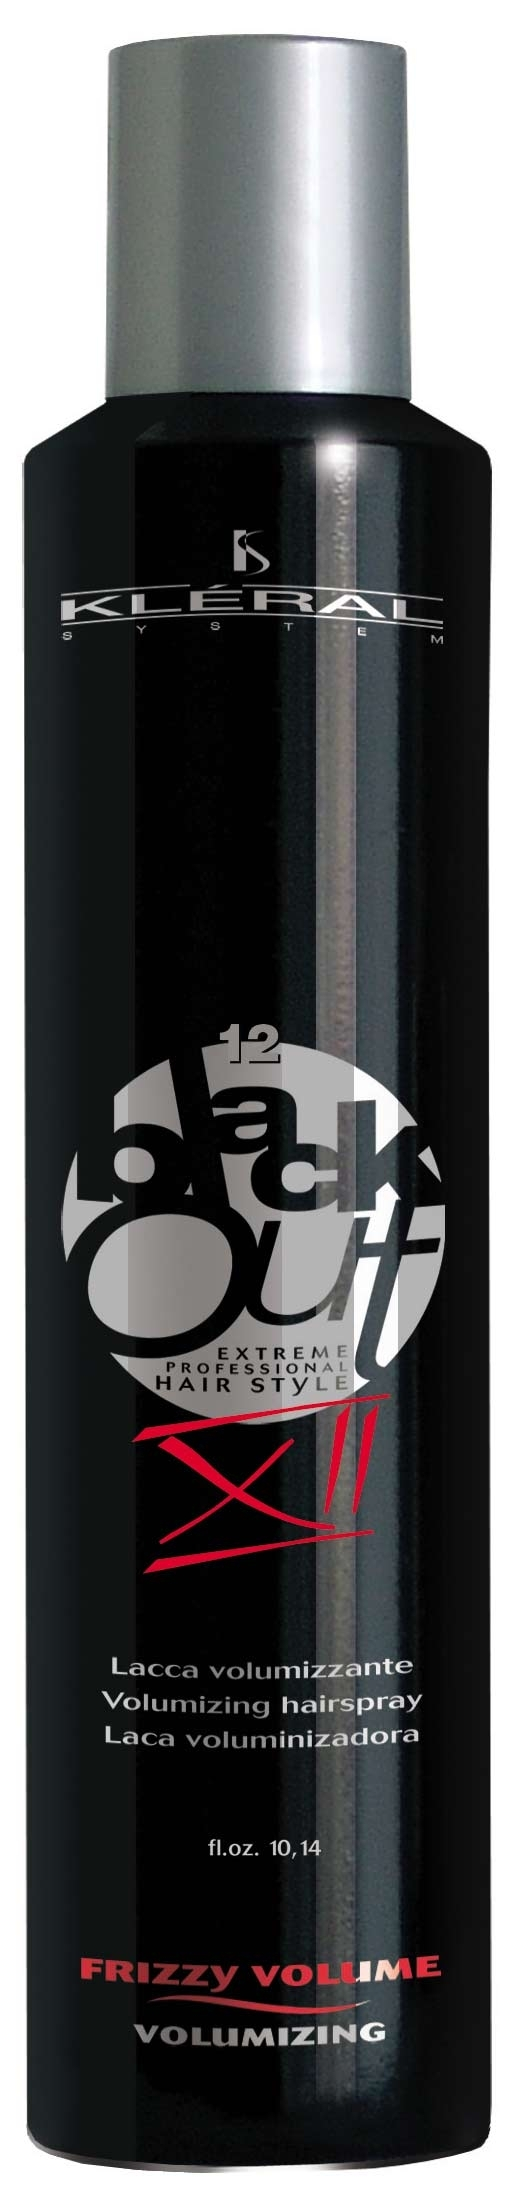 Kléral System Black Out Lacca Volumizzant XII 300 ml - lak na vlasy